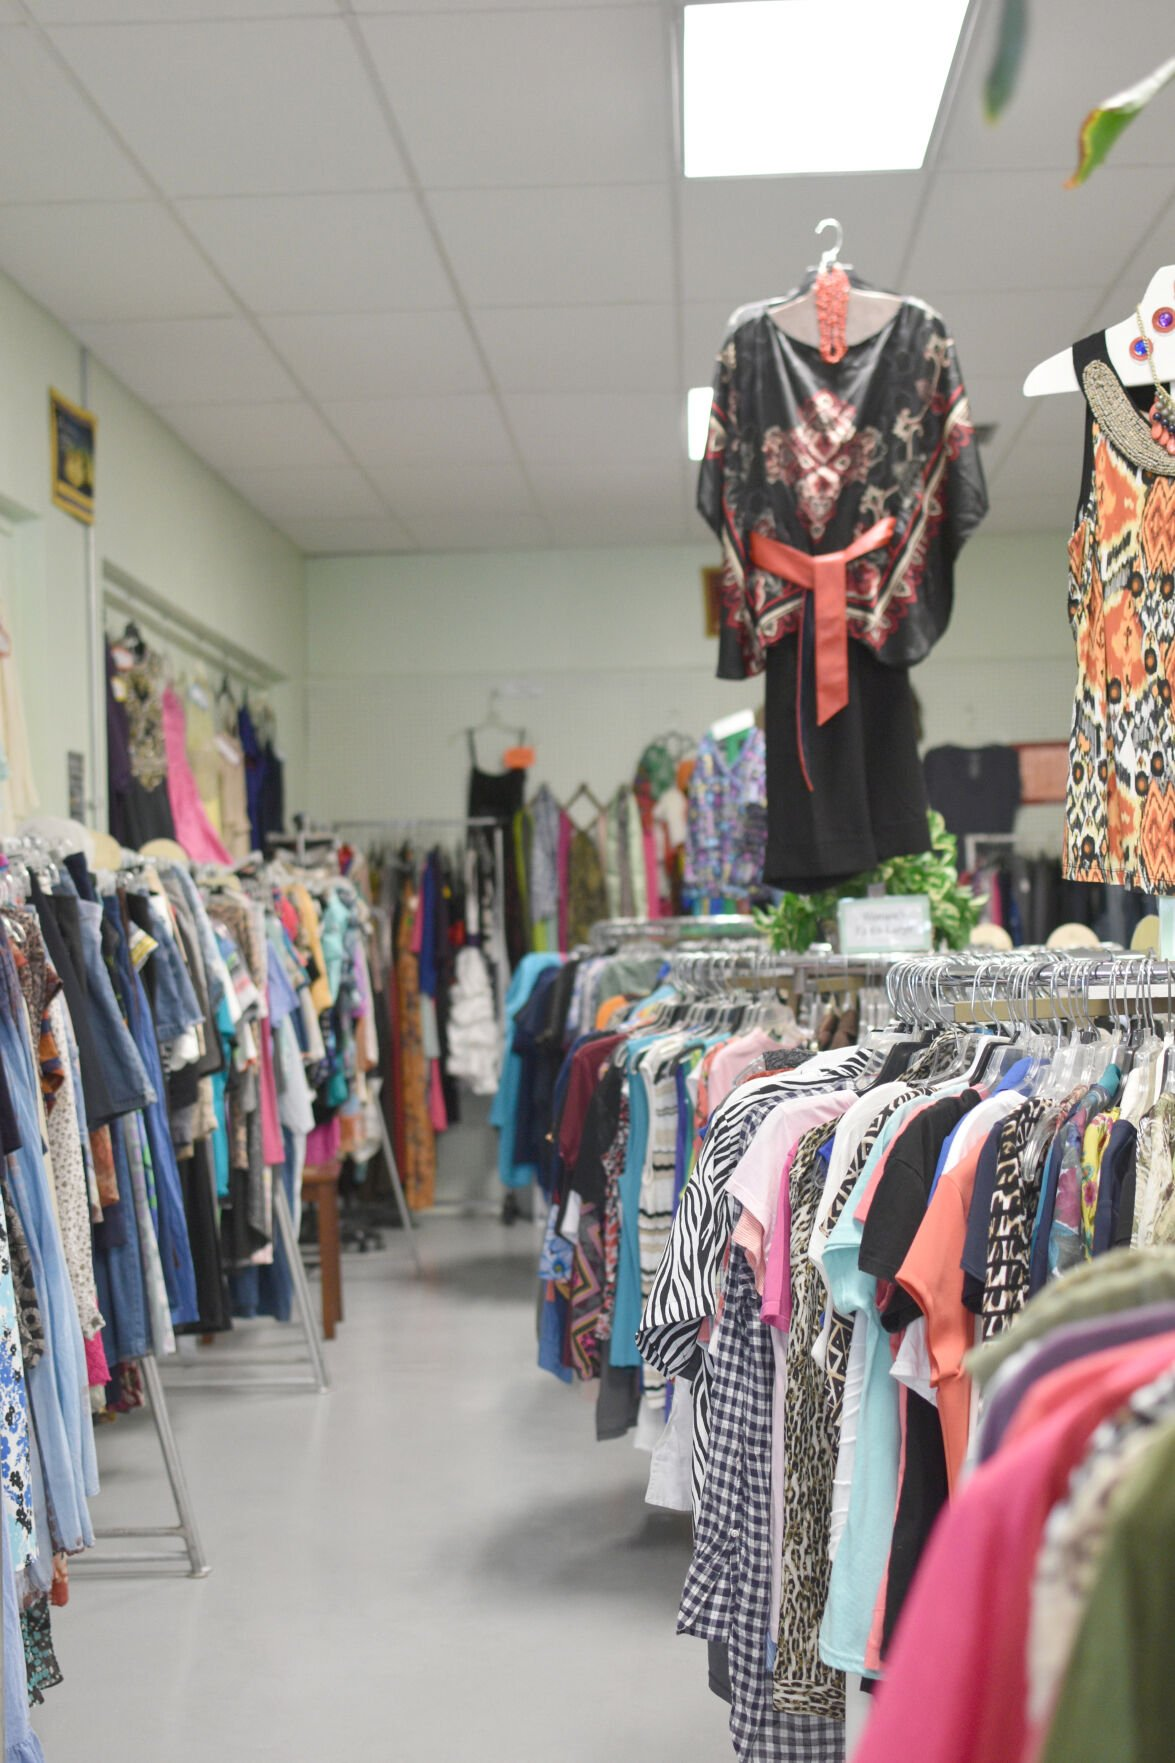 Thrift center open to those in need, seeking volunteers, donations